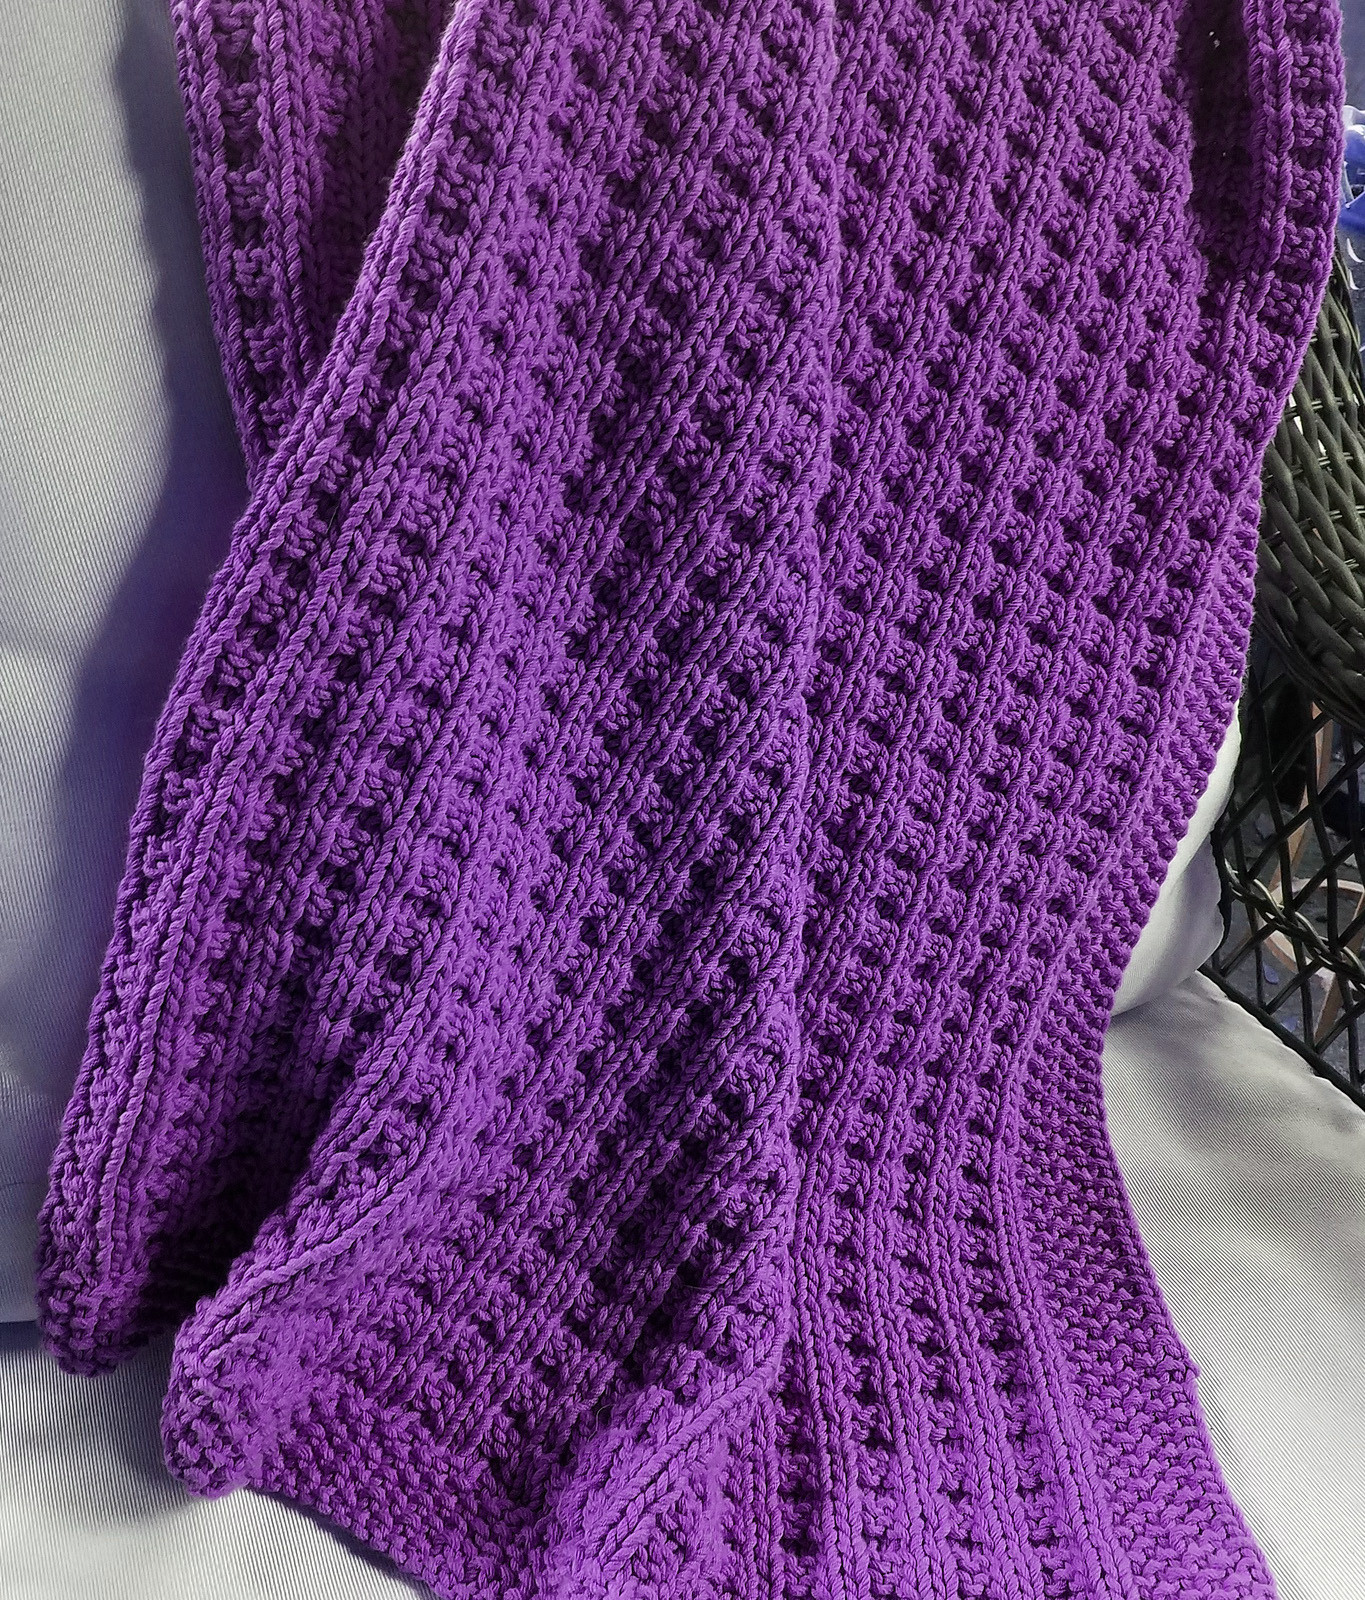 Baby Knitting Patterns Inspirational Quick Baby Blanket Knitting Patterns Of Attractive 50 Models Baby Knitting Patterns